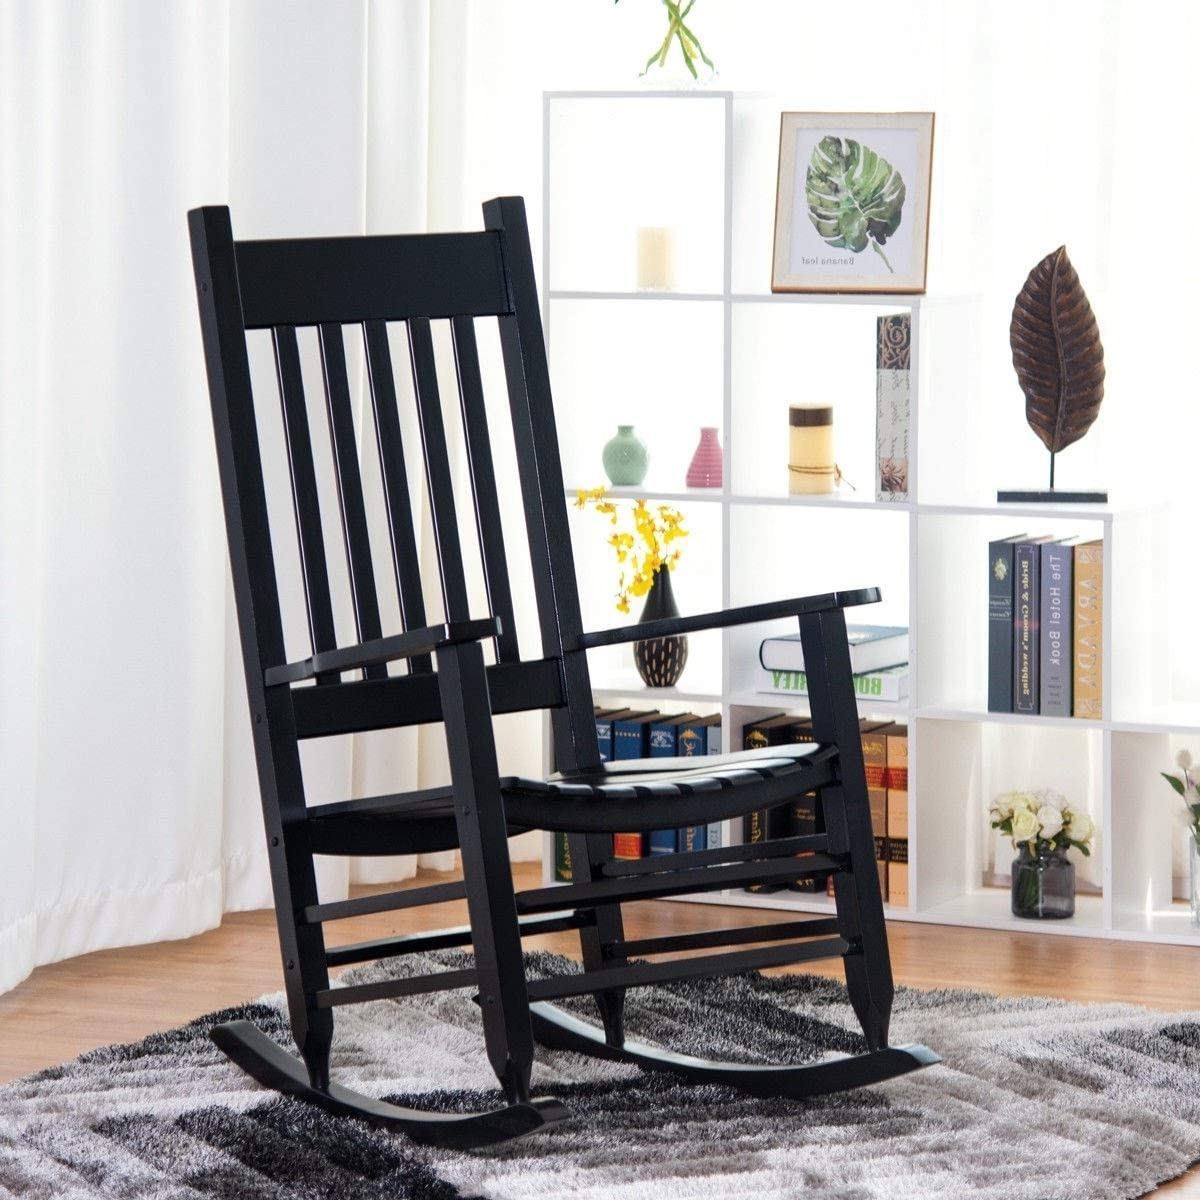 Premium Quality Patio Outdoor Indoor Wooden Rocking Furniture Chairs for Porch, Garden Deck, Beach Side and All Weather Seasons Black